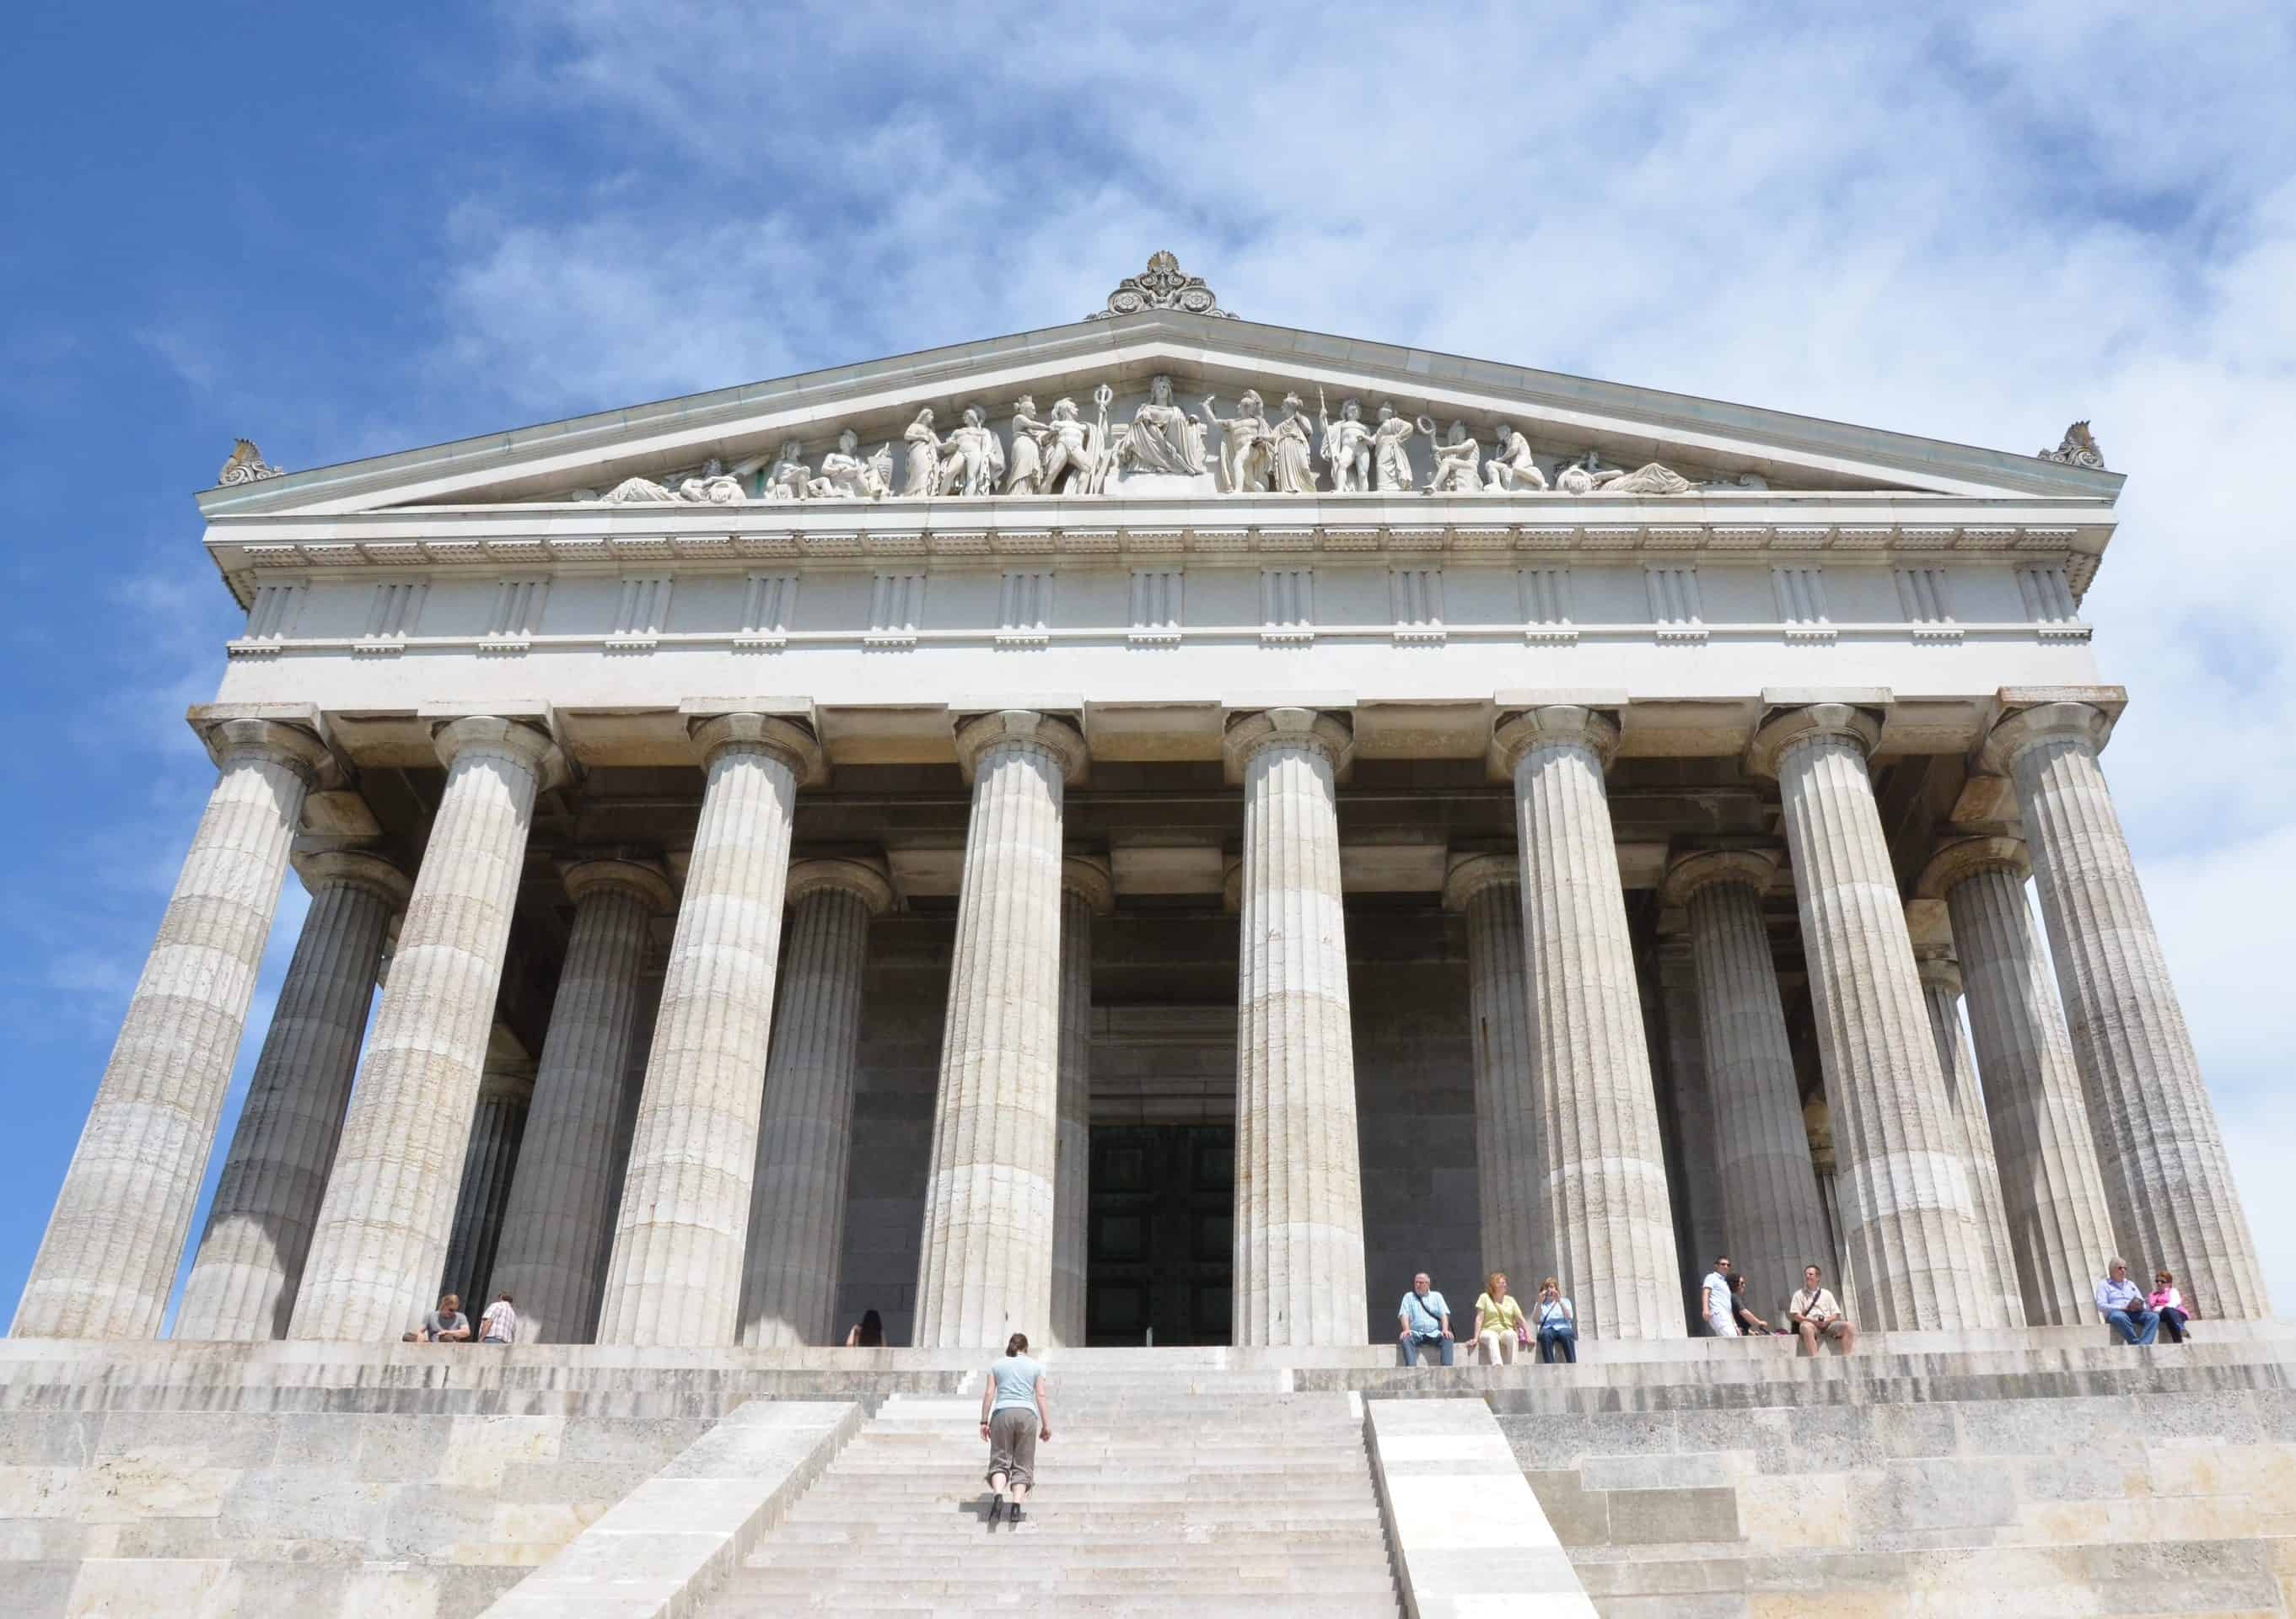 Walhalla Memorial, Germany